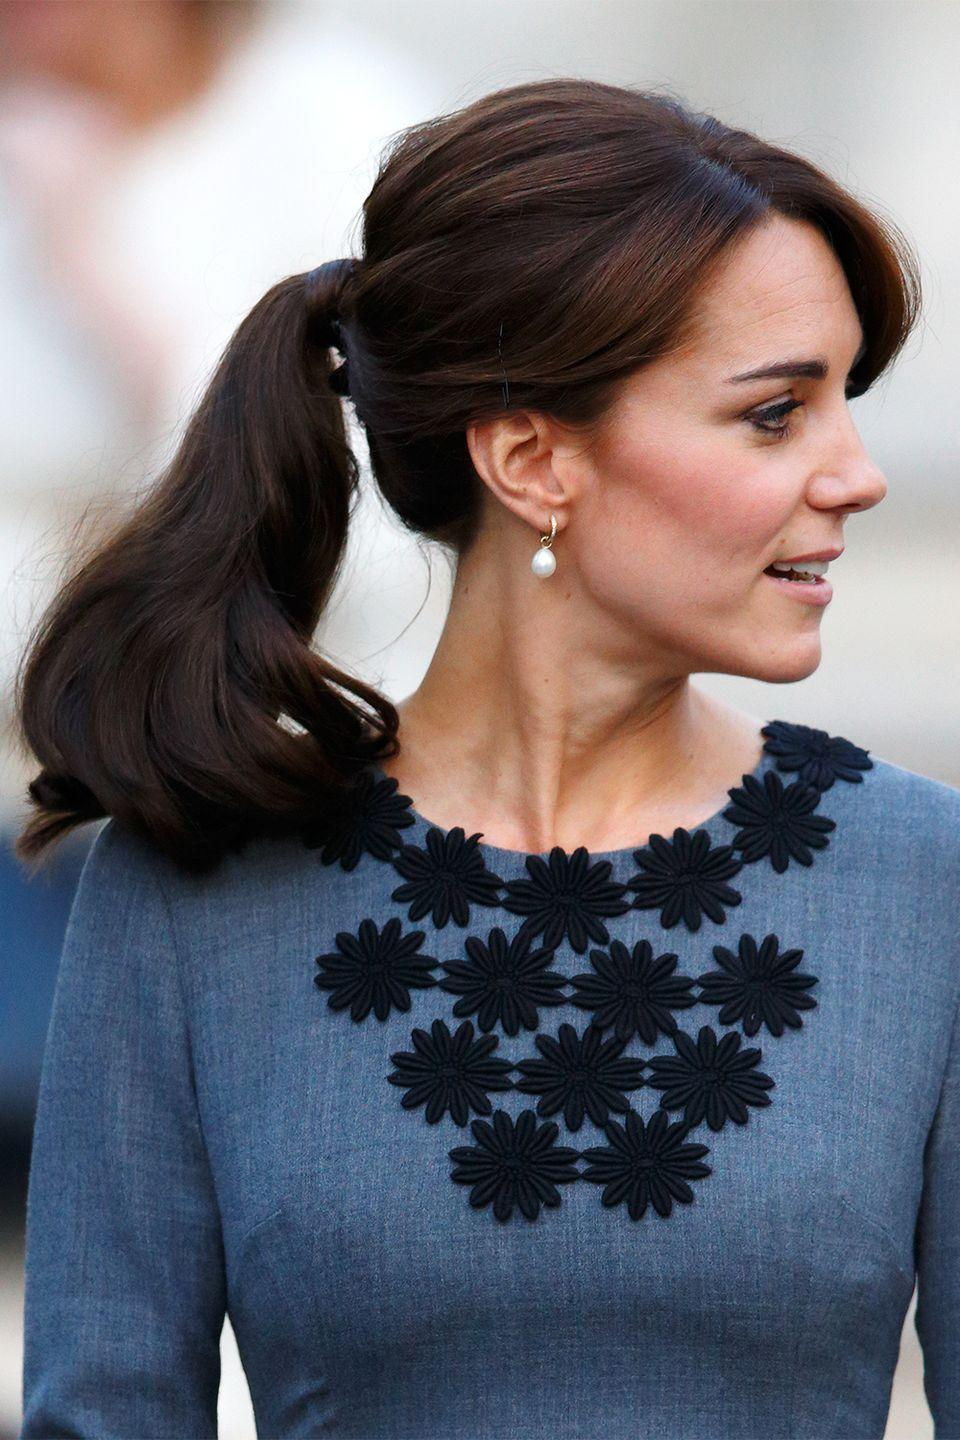 <p>Even royals can wear ponytails, as seen on The Duchess of Cambridge in 2015.</p>